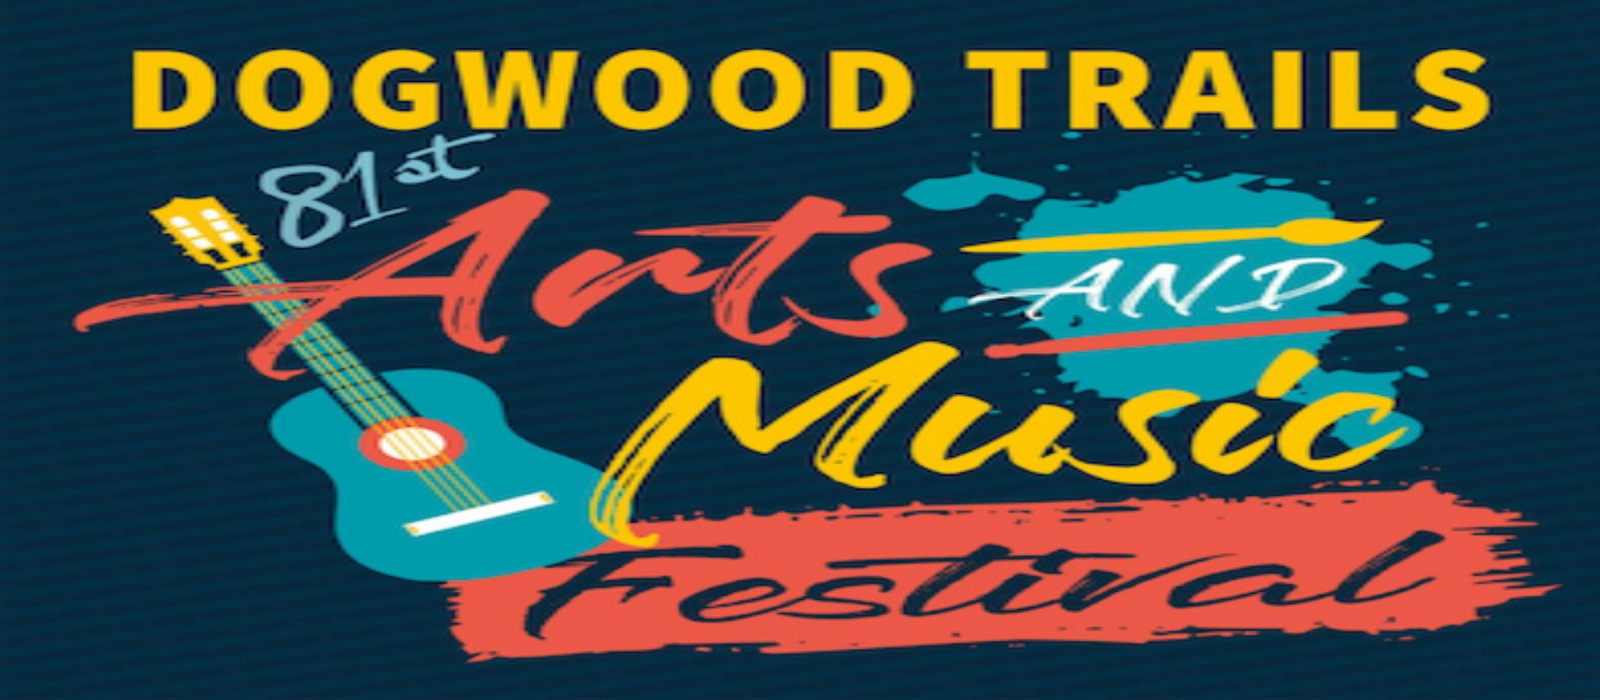 81st Dogwood Trails Arts and Music Festival